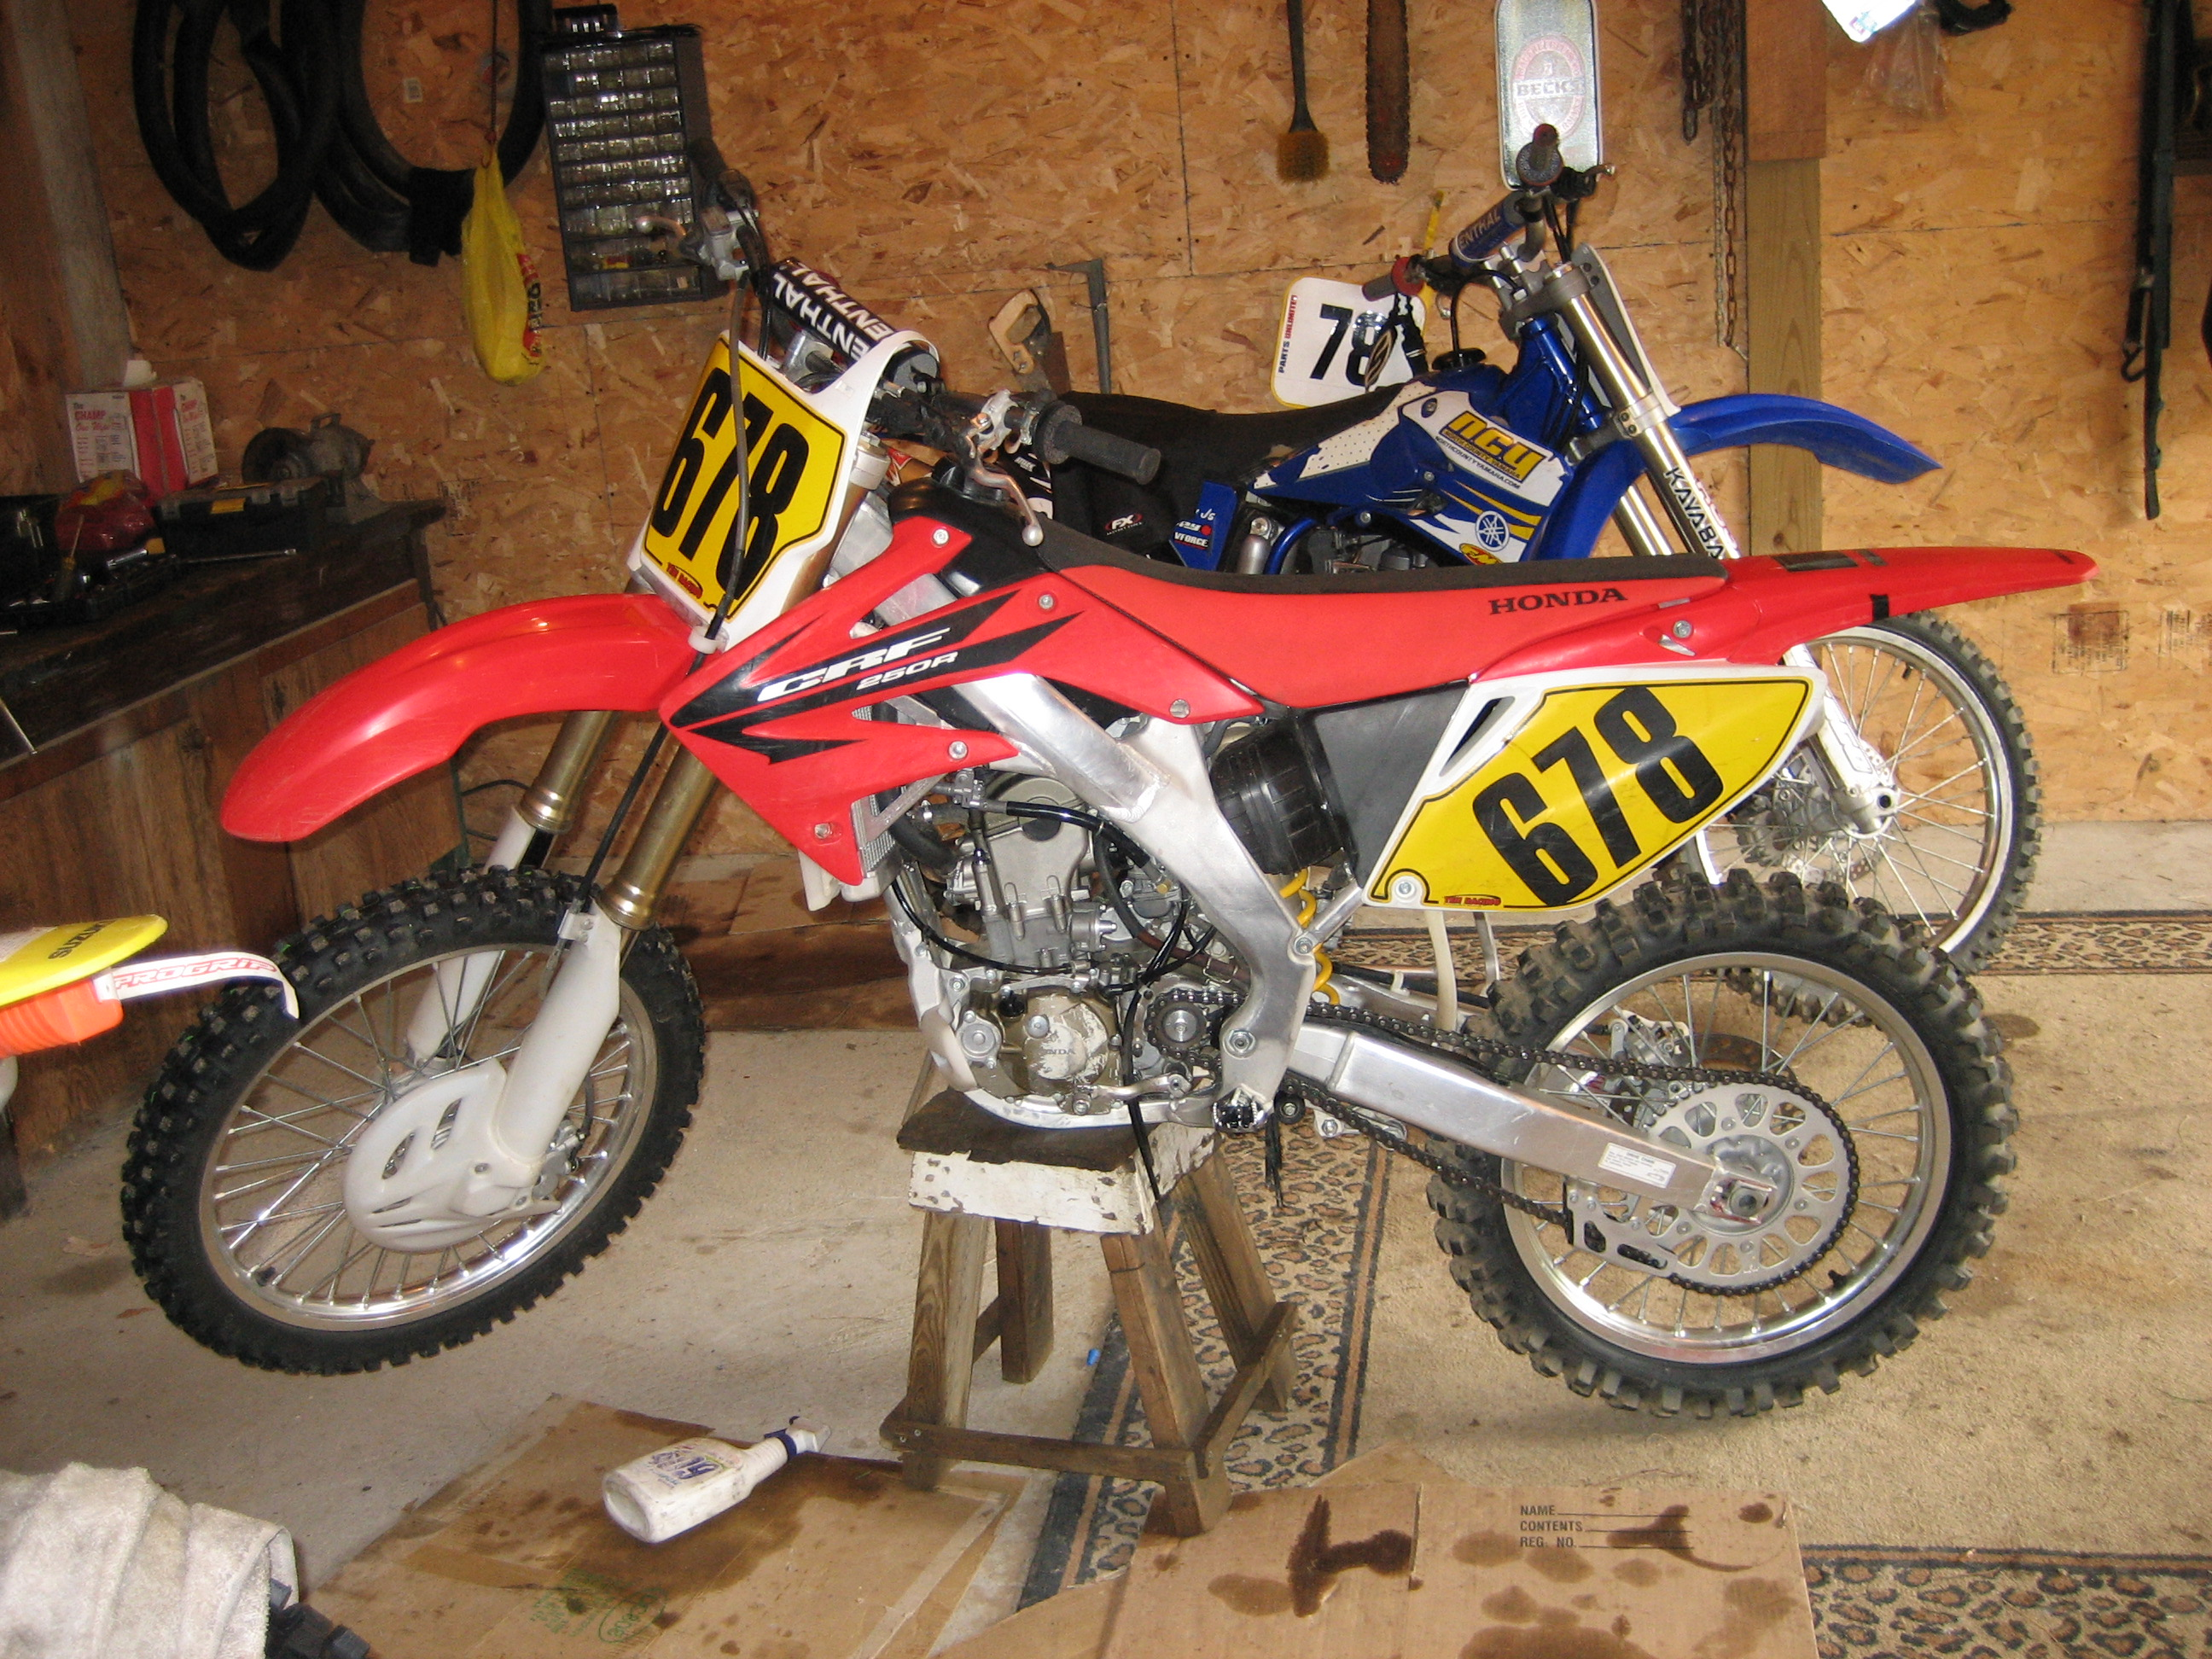 Build a dirt bike stands pictures to pin on pinterest for How to make a bike stand out of wood